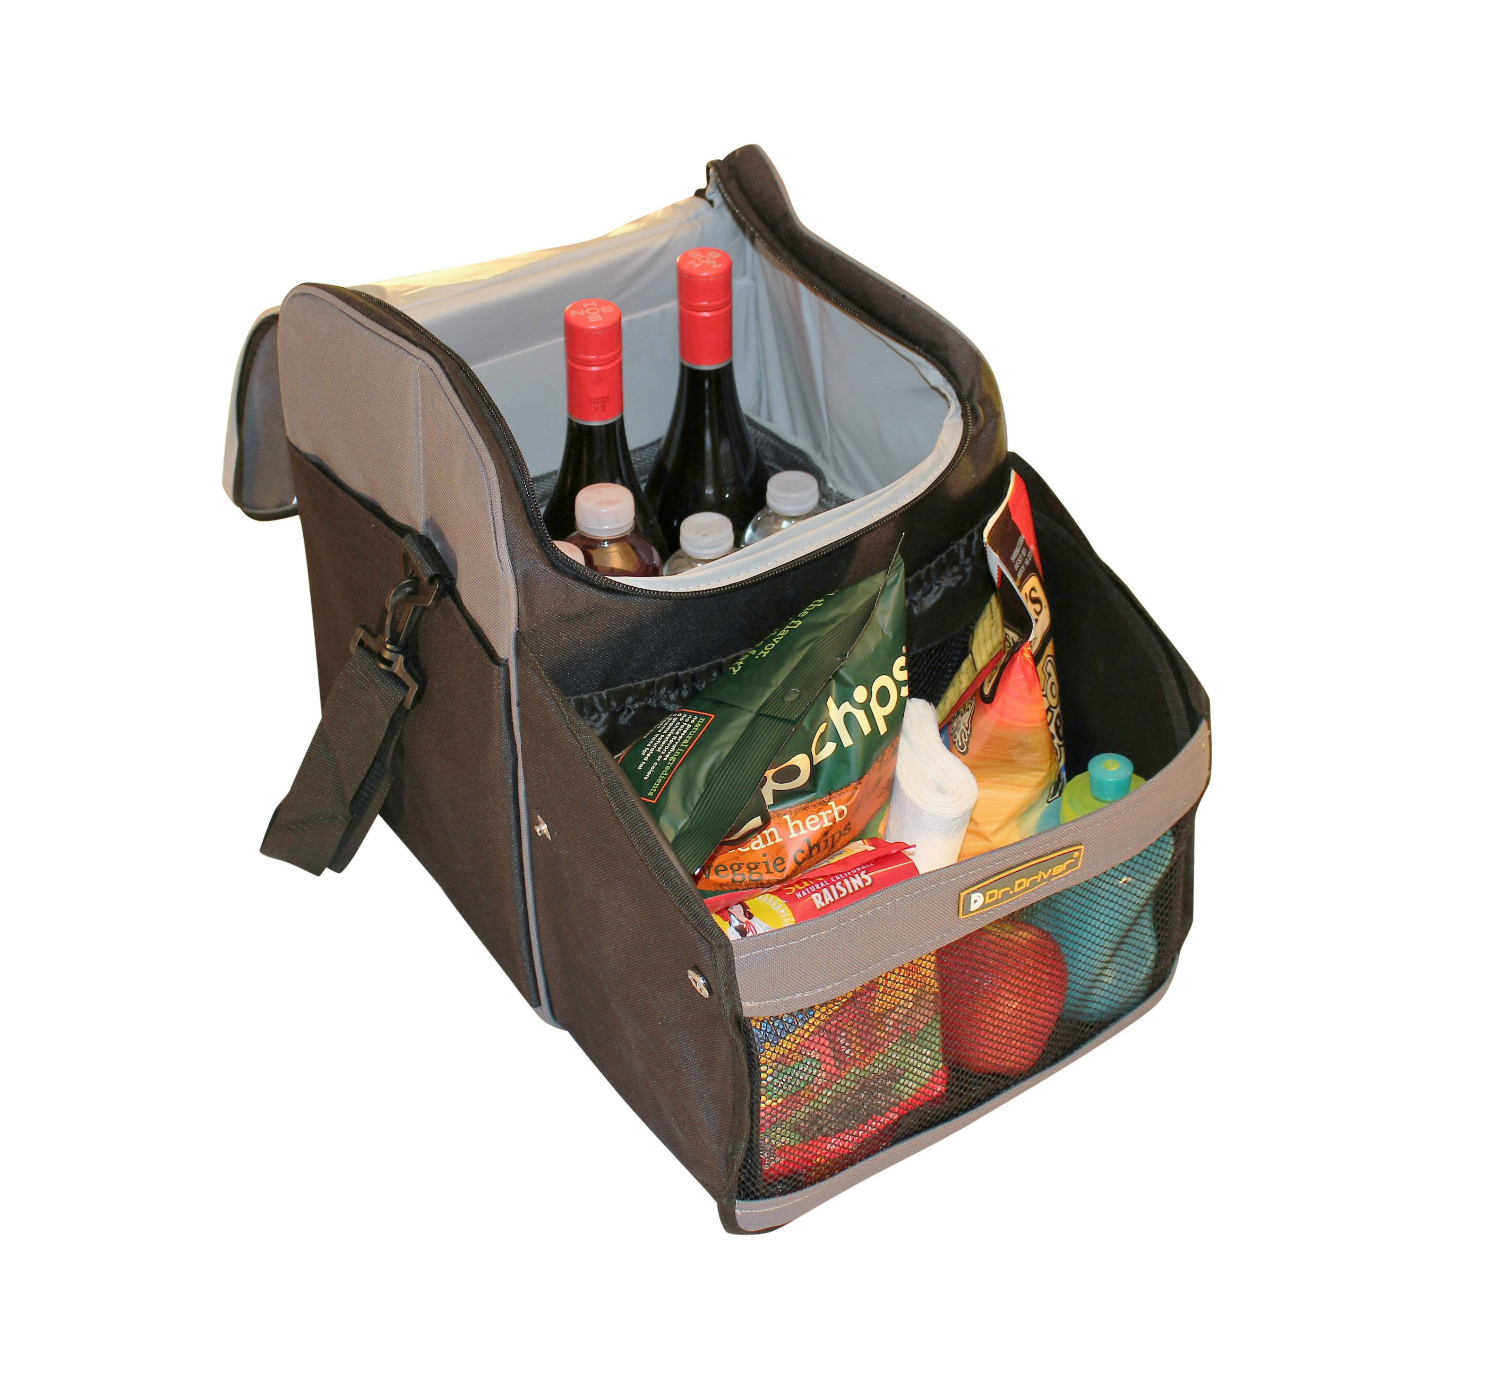 Soft Travel cooler open with wine, water bottles and snacks